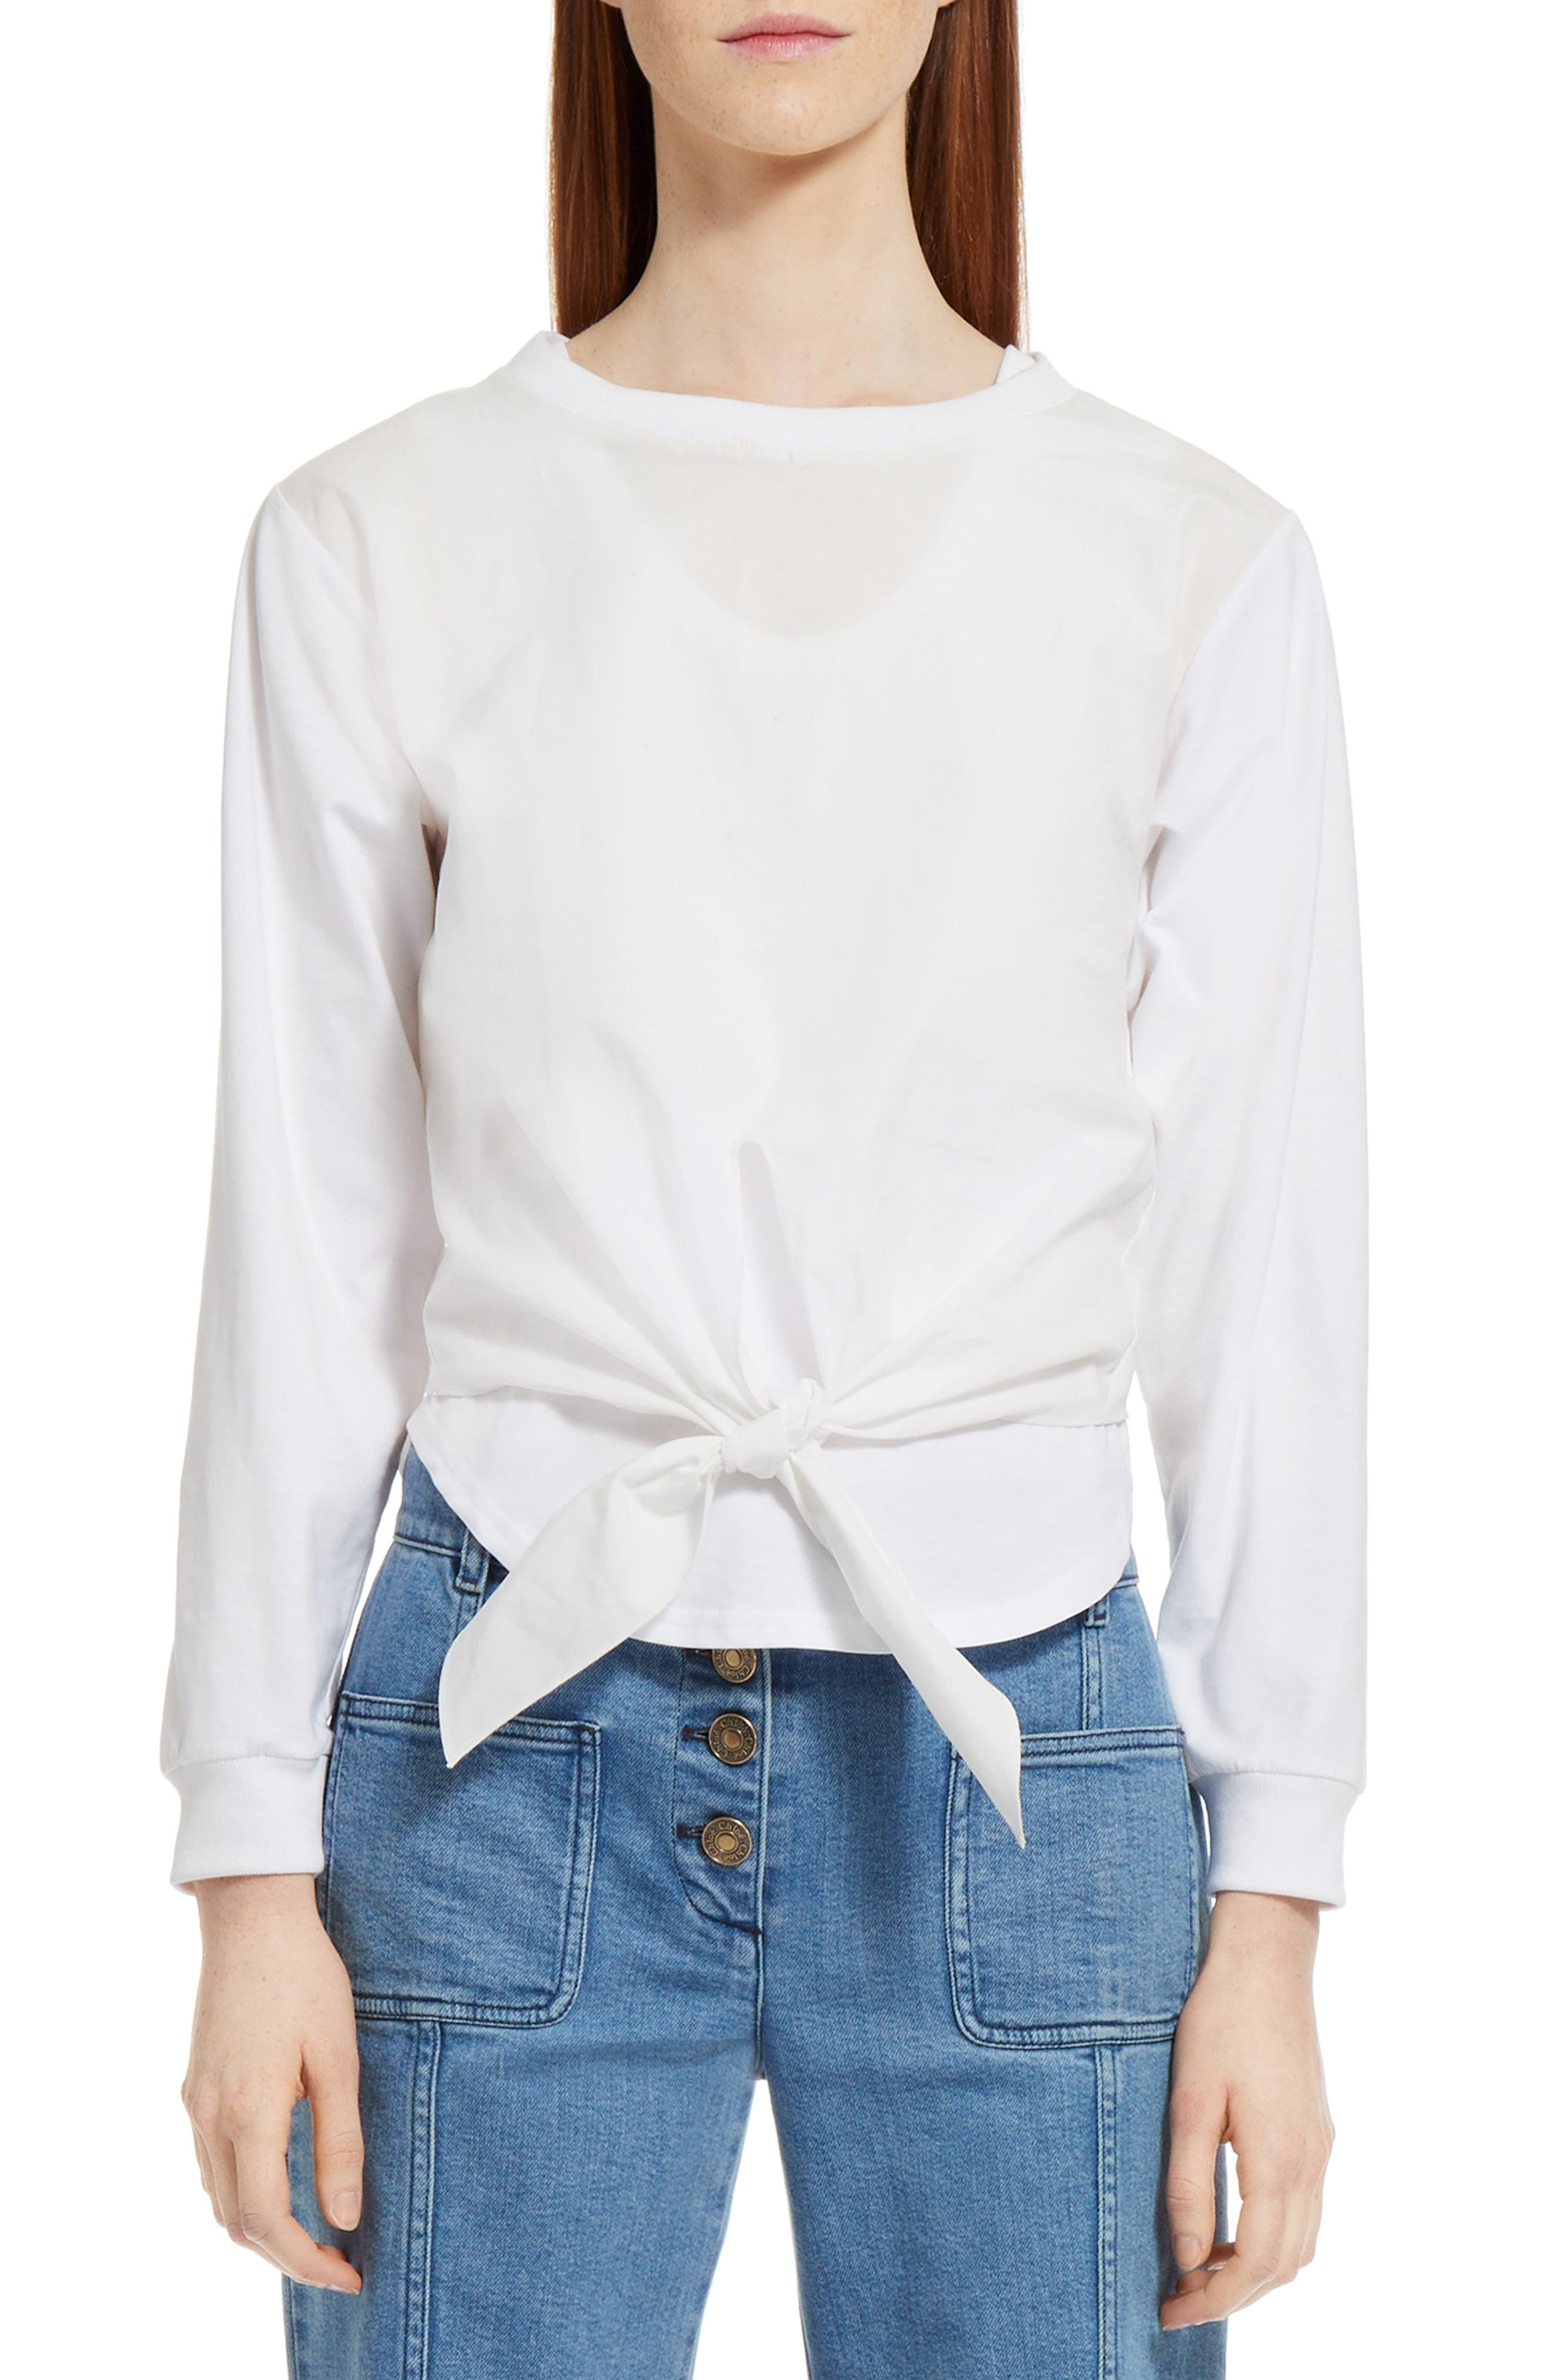 Chloé Layered Tie Front Top